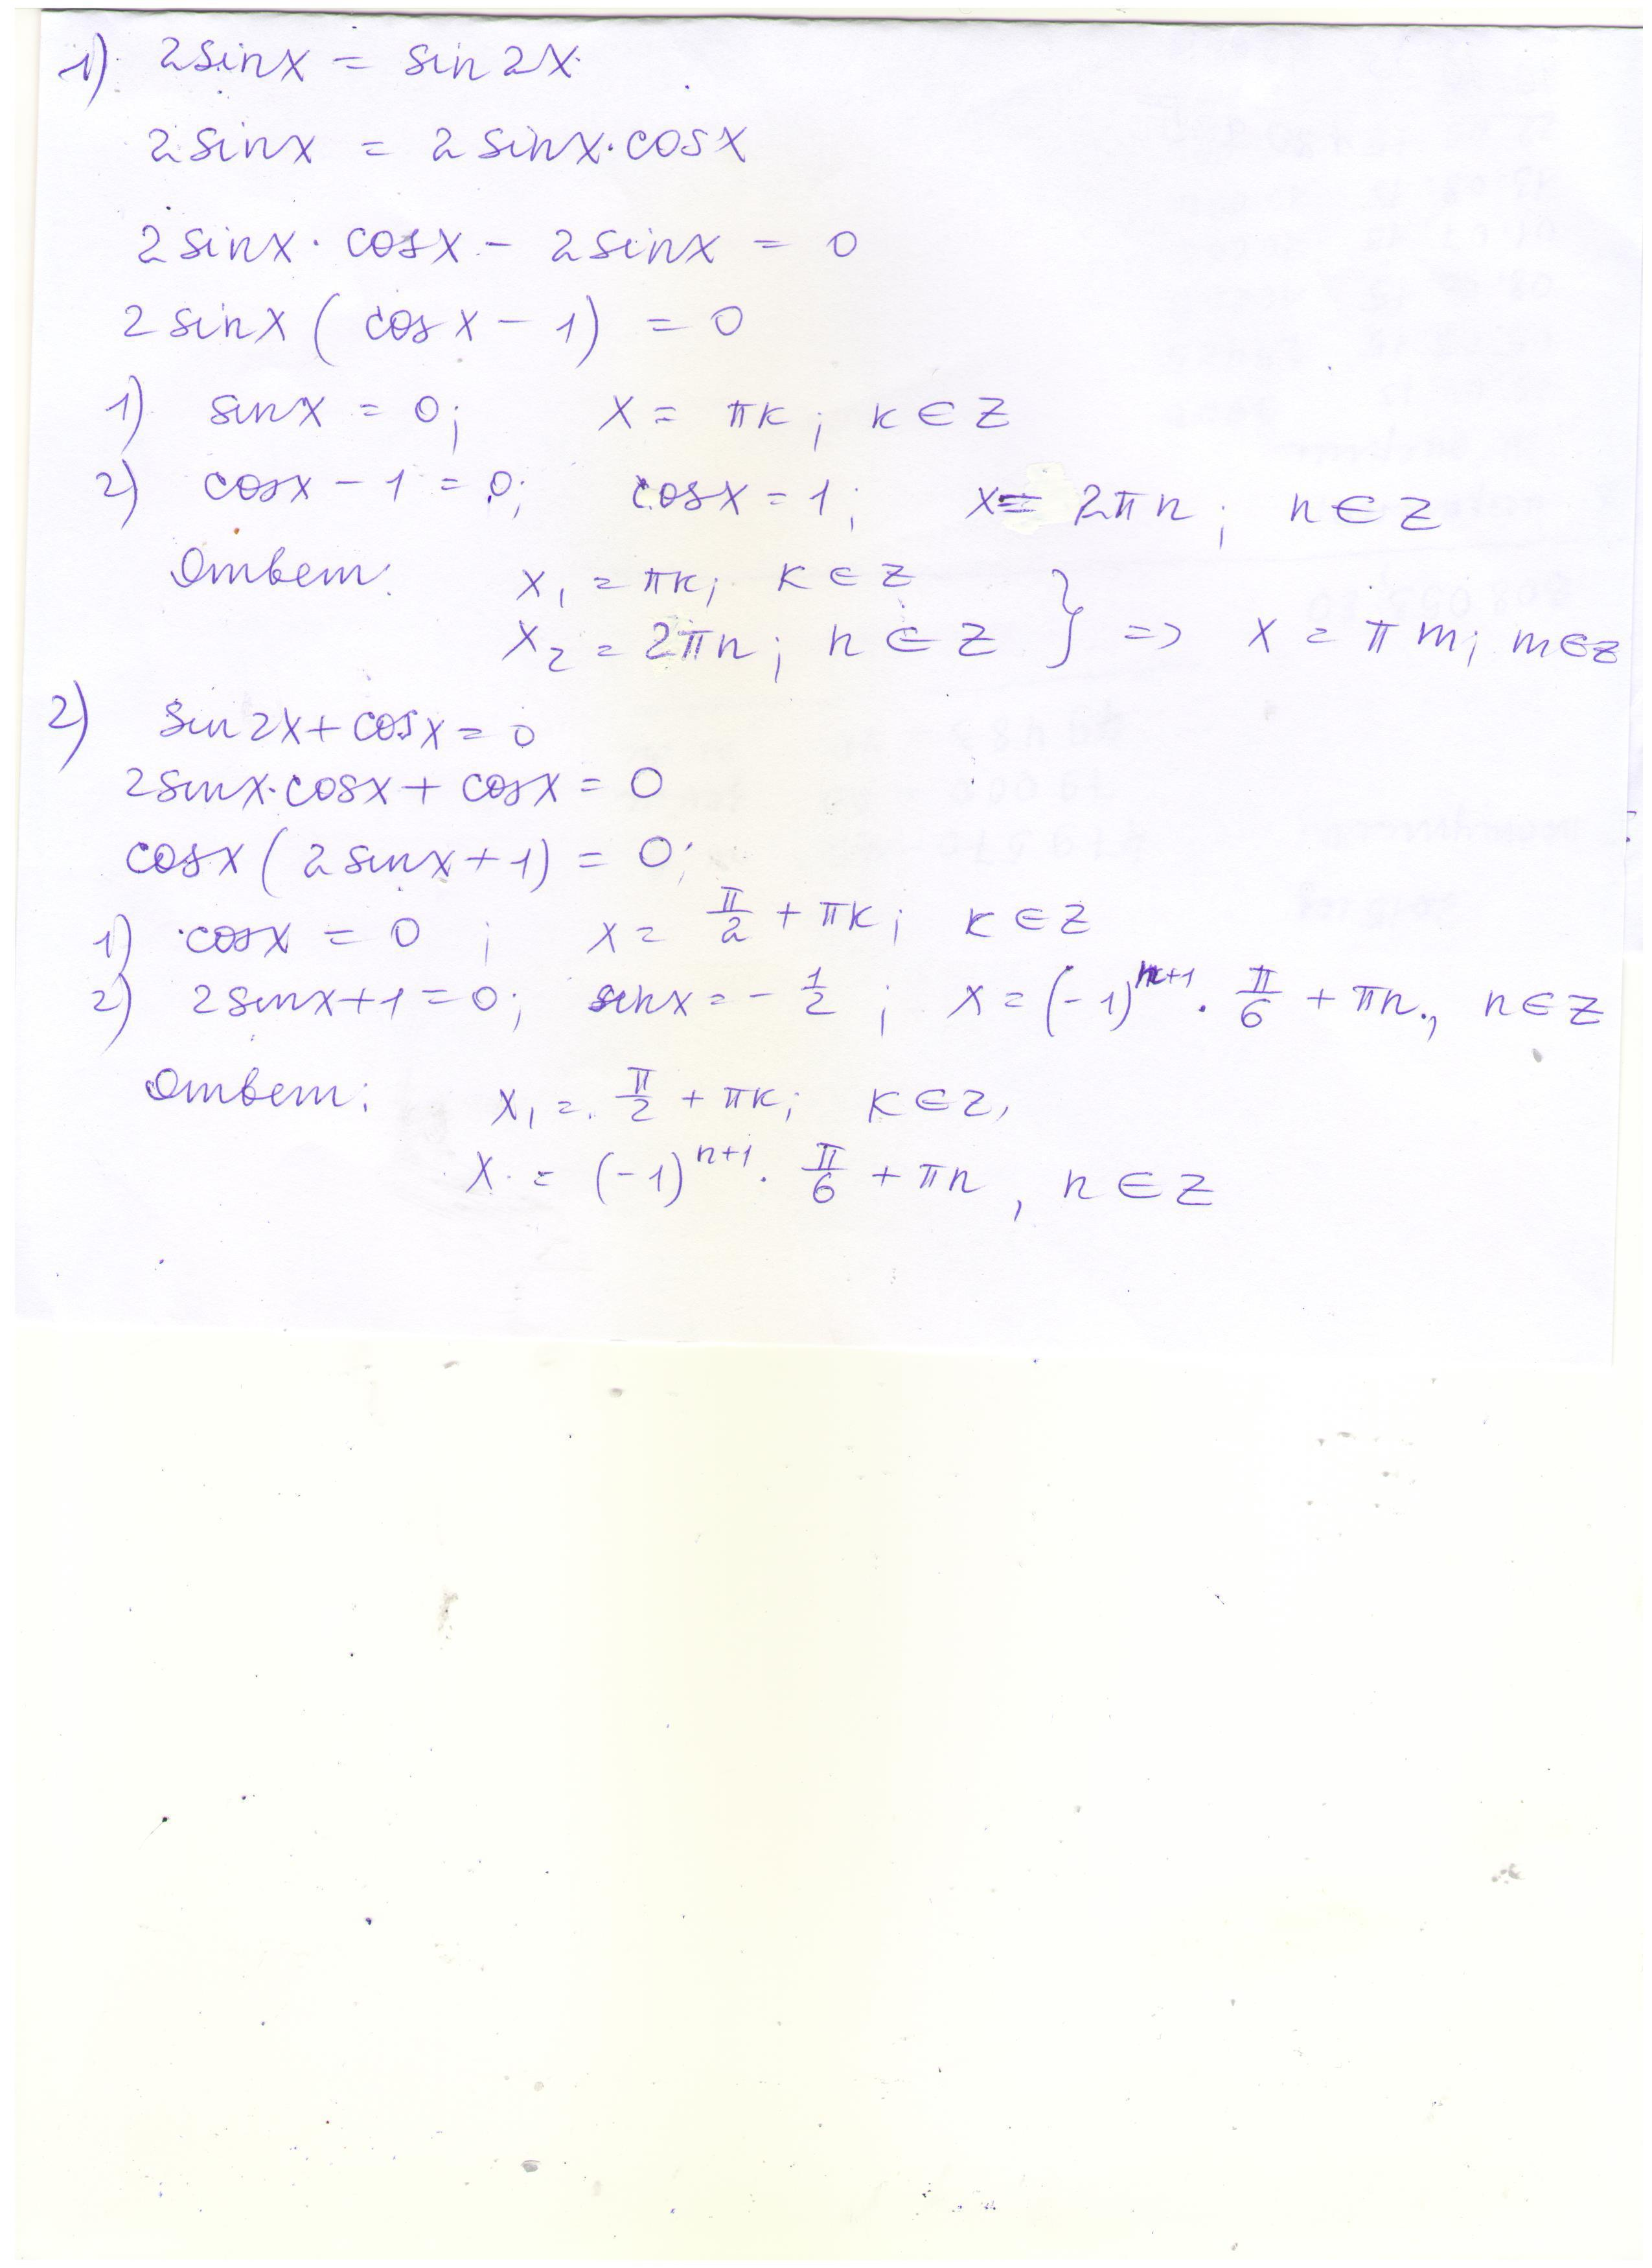 Ex 3.4, 7 - Find general solution of sin 2x + cos x = 0